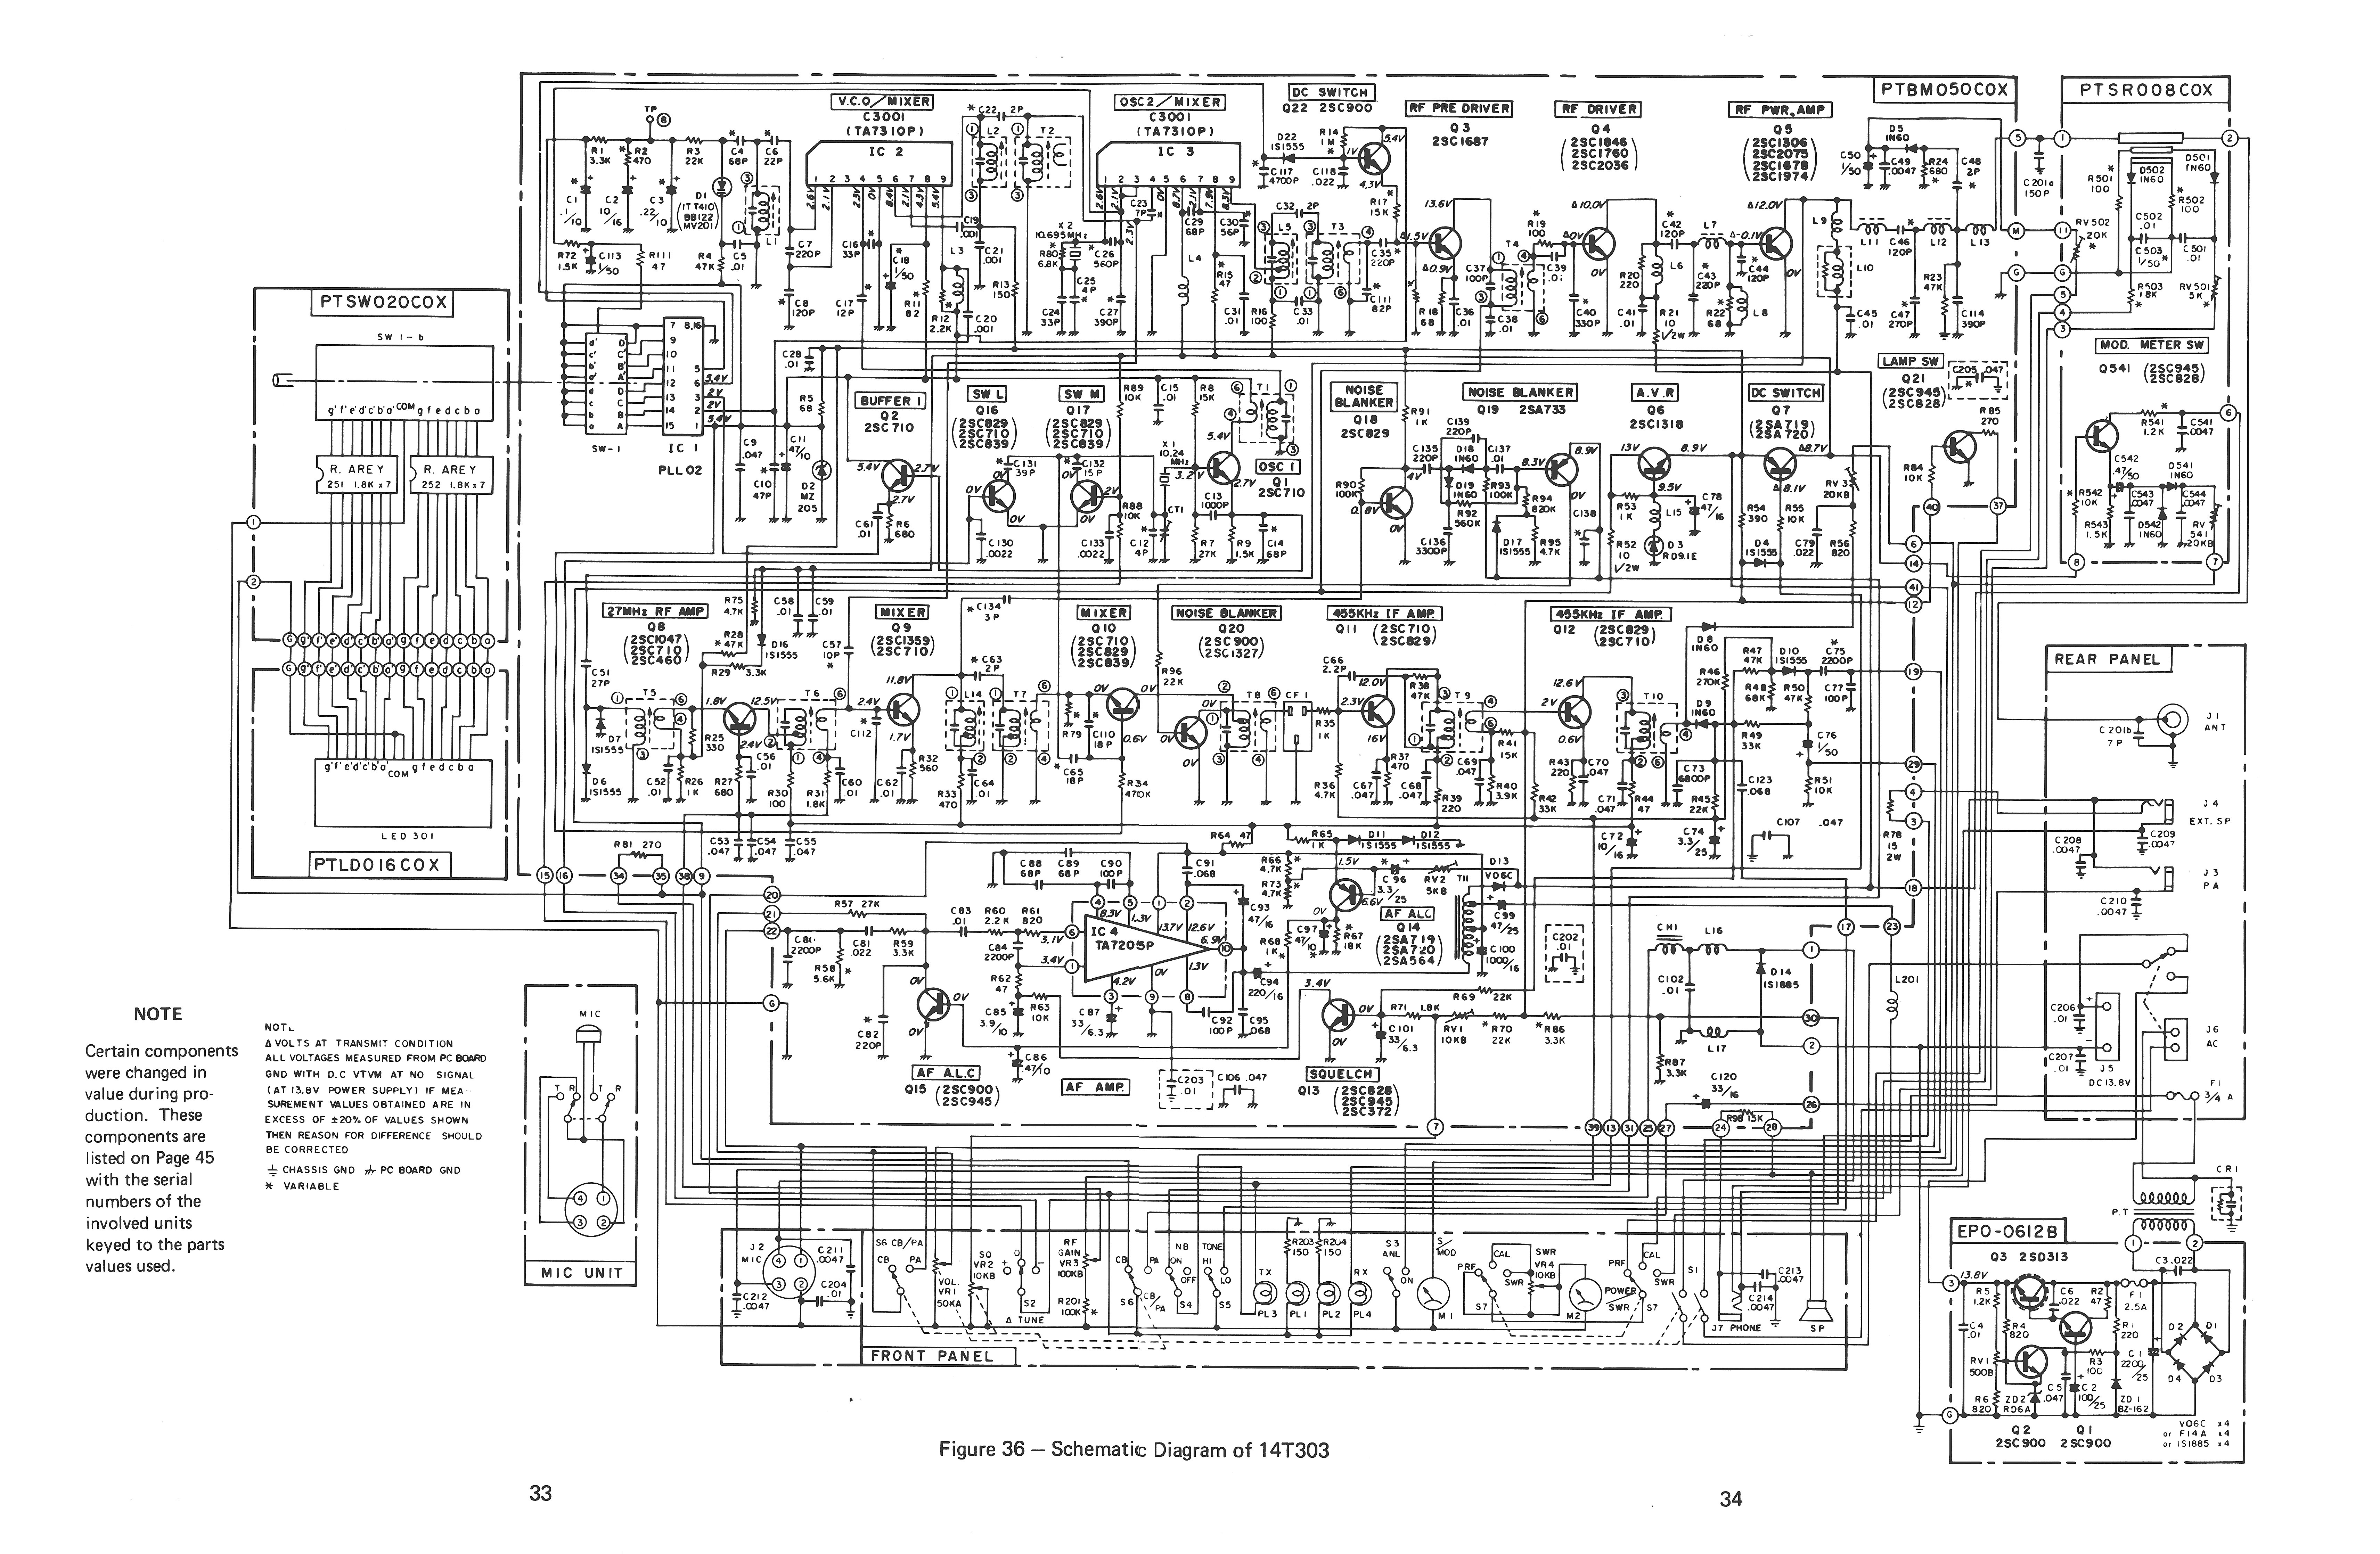 Rca 14t260 14t270 14t303 14t304 14t305 Ccc Wiring Diagram Page 33 34